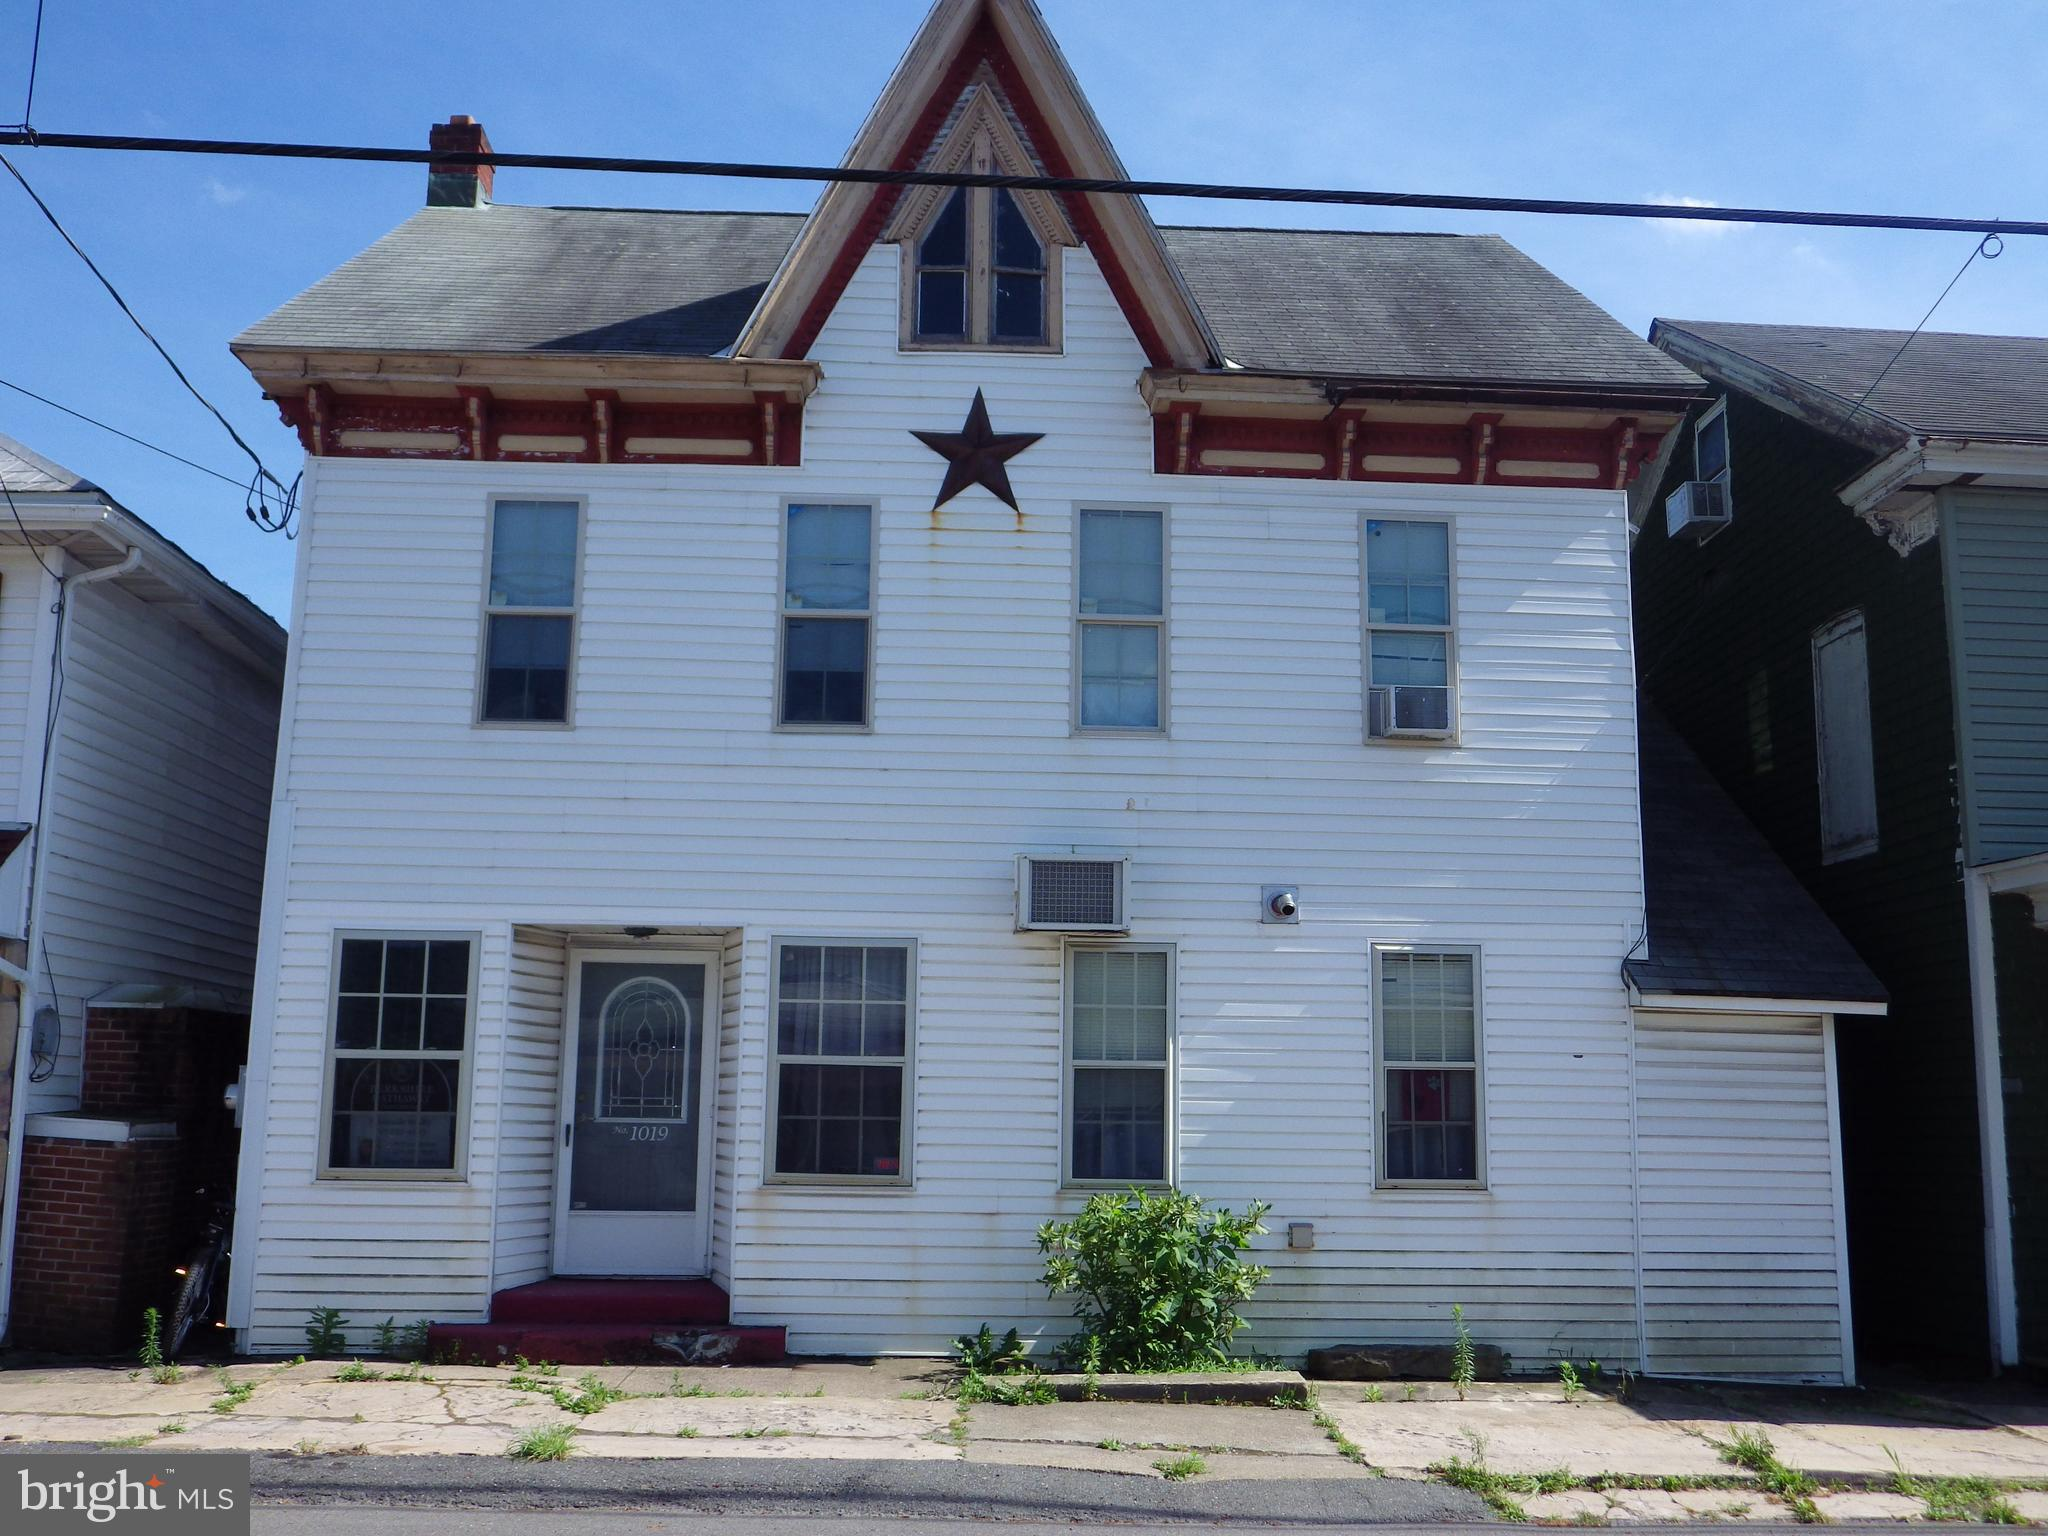 1019 W MAIN STREET, VALLEY VIEW, PA 17983